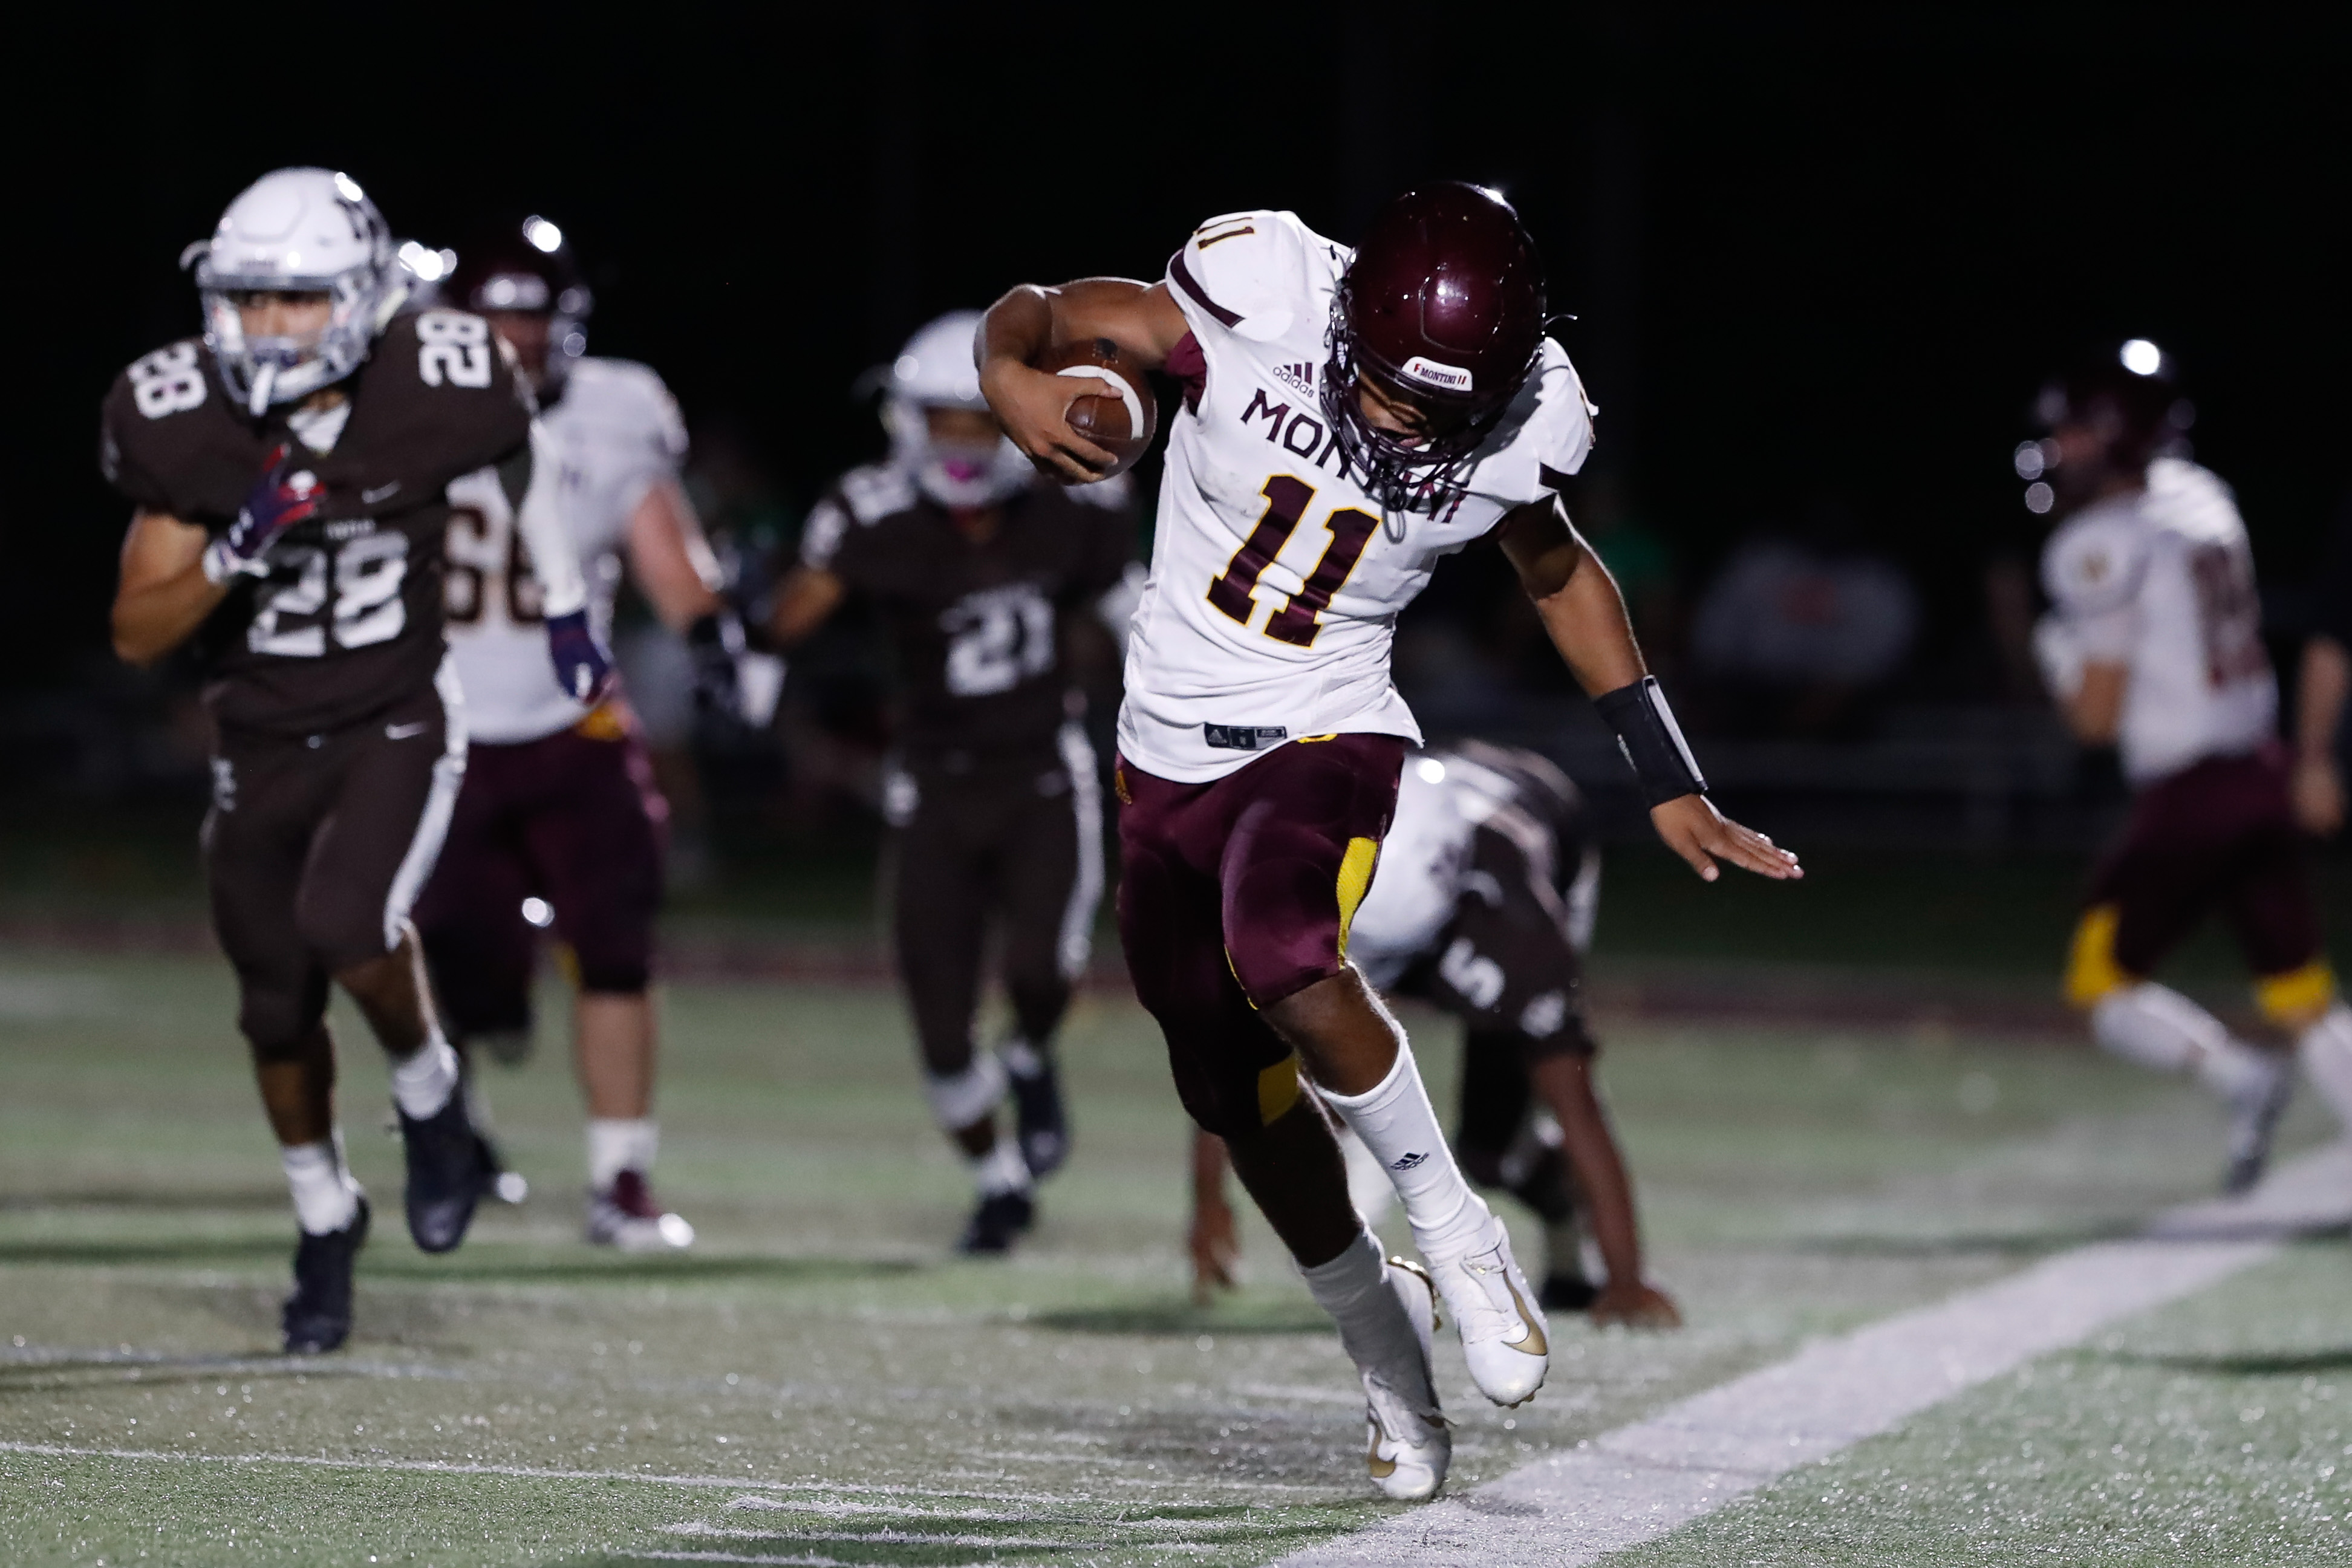 Montini's Deontay Bell (11) runs with the ball during the game against Mount Carmel.